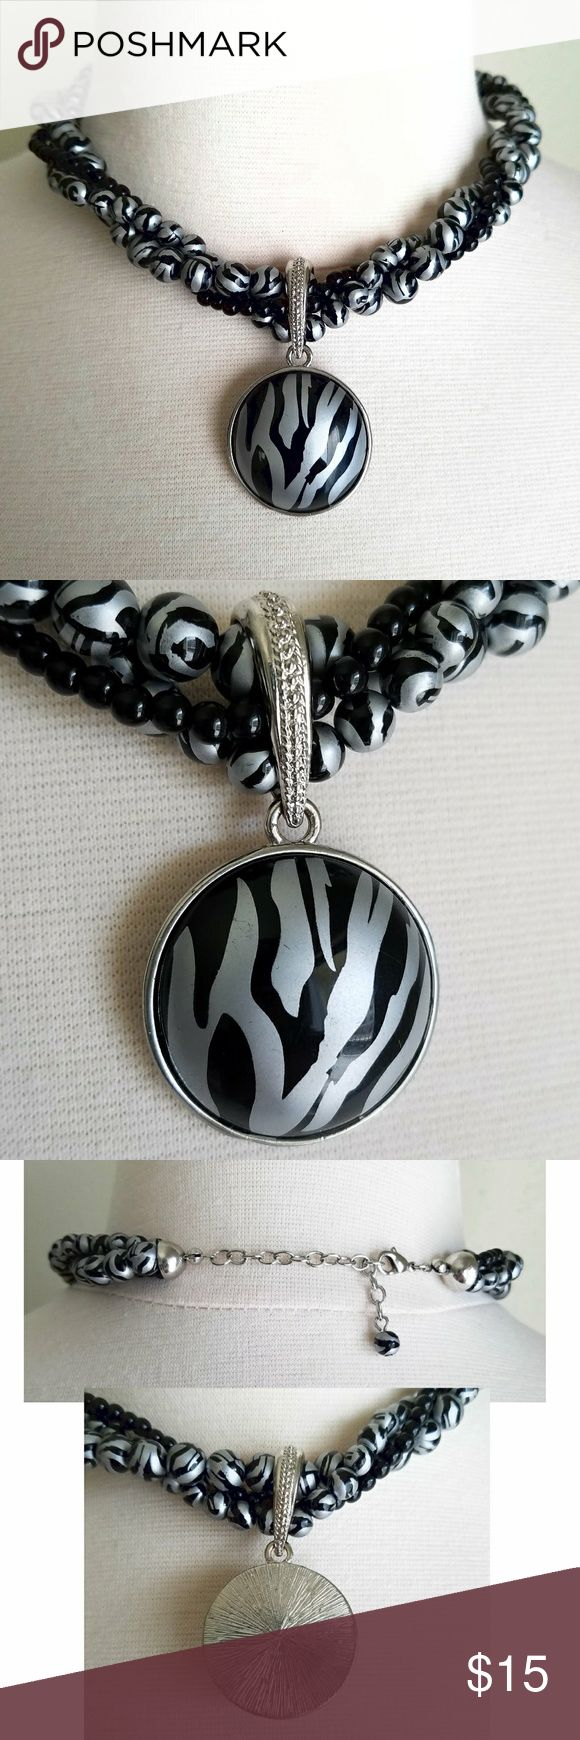 "Zebra Black Beaded Pendant Statement Necklace Layers of zebra print and solid black beads. Black and silver zebra animal print pendant with silver metal clasp and back. Necklace length (end to end)- adjustable 16.25""-18.5"", Pendant- 1 1/8"" diameter . Good used condition (few minor scratches). Jewelry Necklaces"